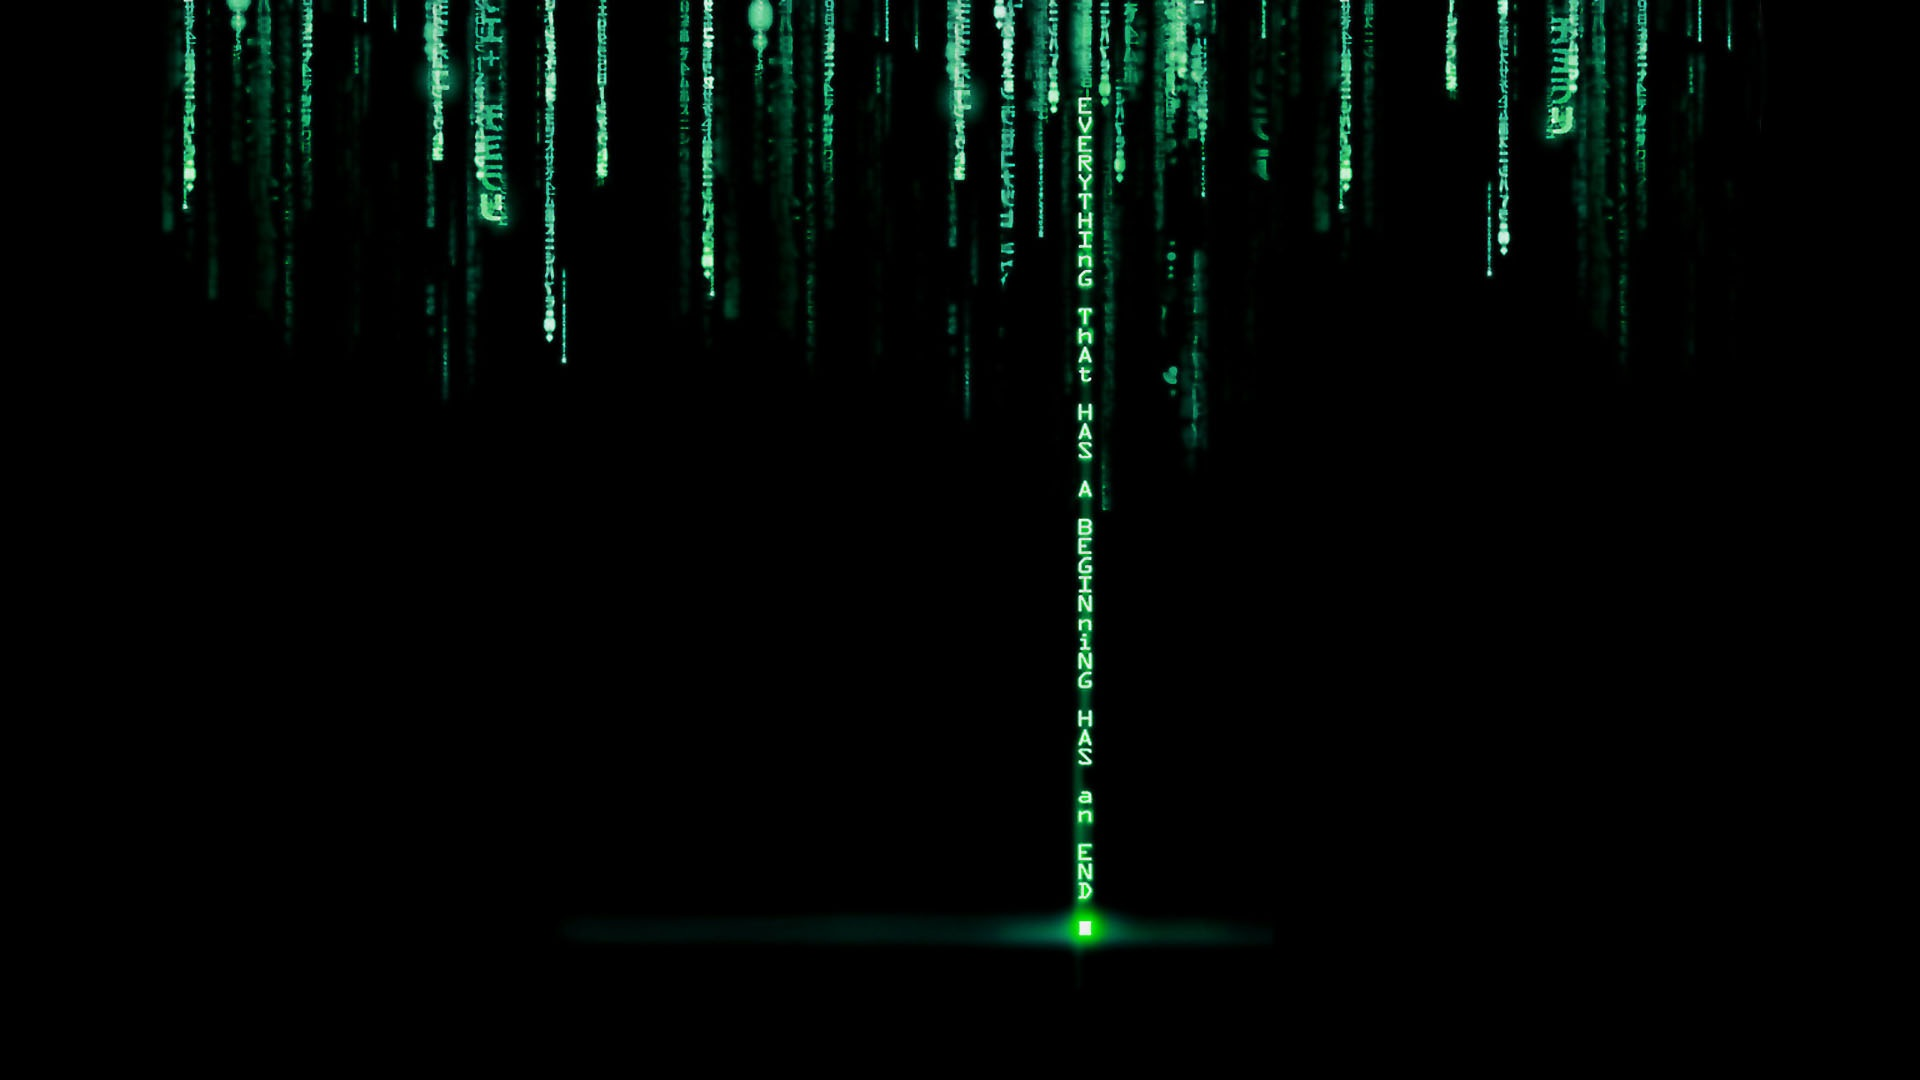 wallpaper, matrix, animated fond ecran hd